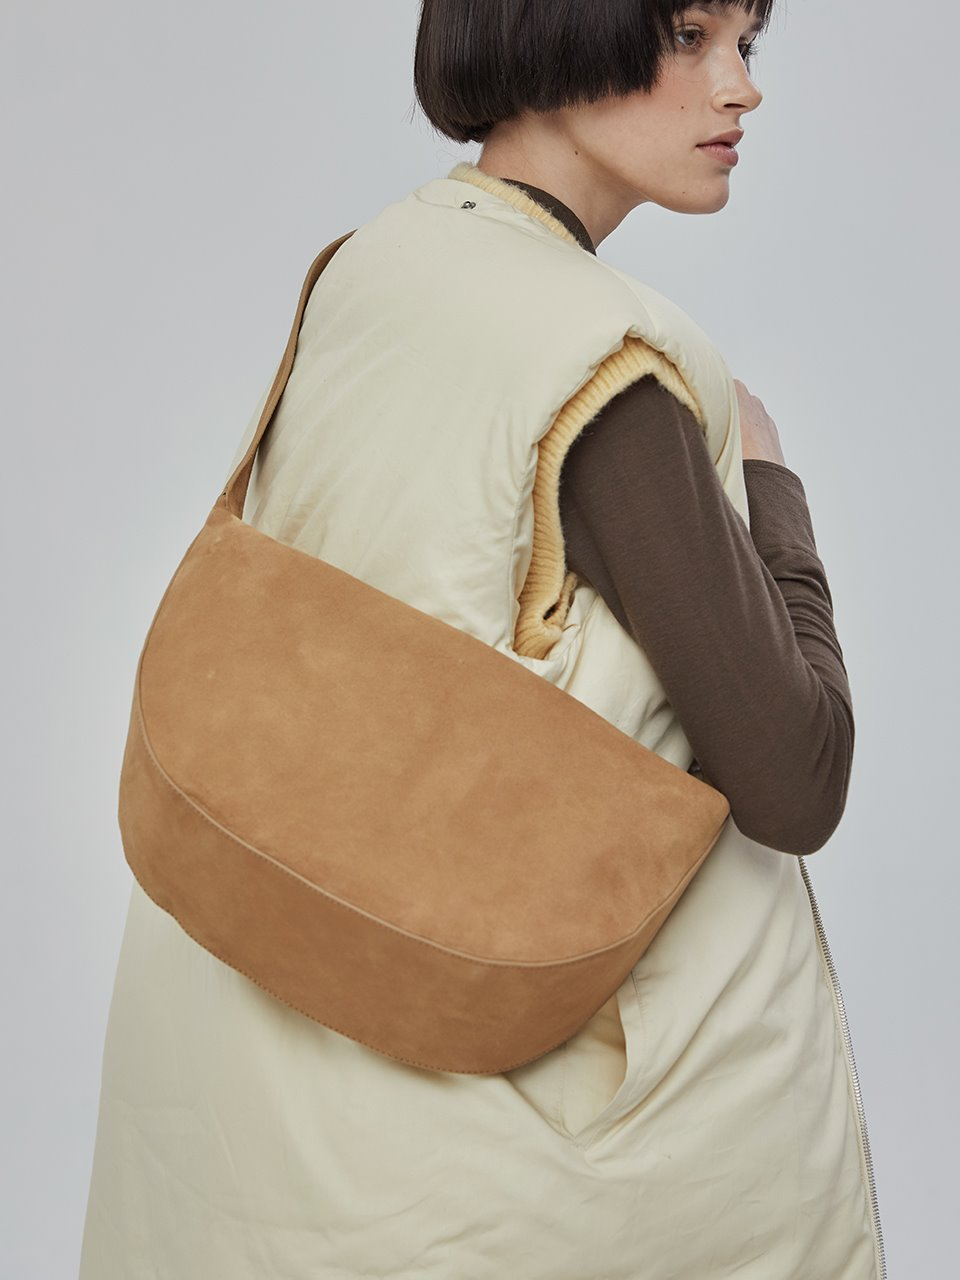 [11/30예약배송][20WINTER] MOSS HALF LEATHER_camel suede